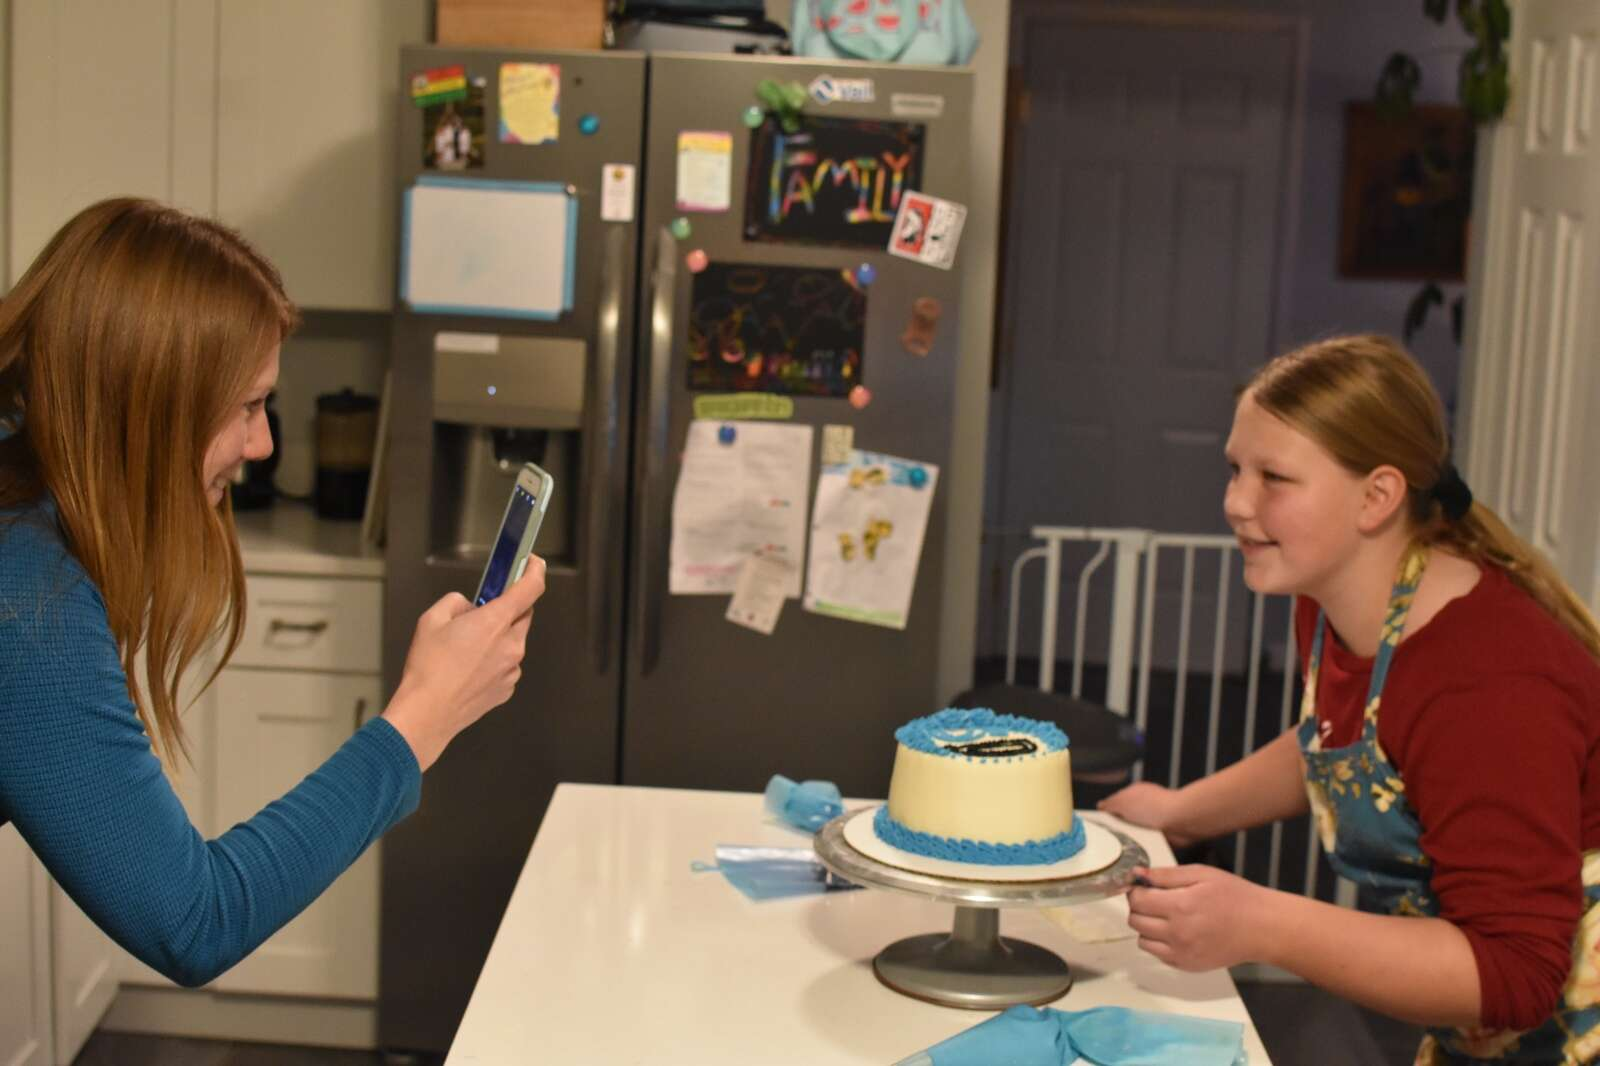 Andrea Beacham, left, photographs her daughter River Close with her most recent completed cake design on Wednesday, Dec. 2. | Photo by Steven Josephson / sjosephson@summitdaily.com